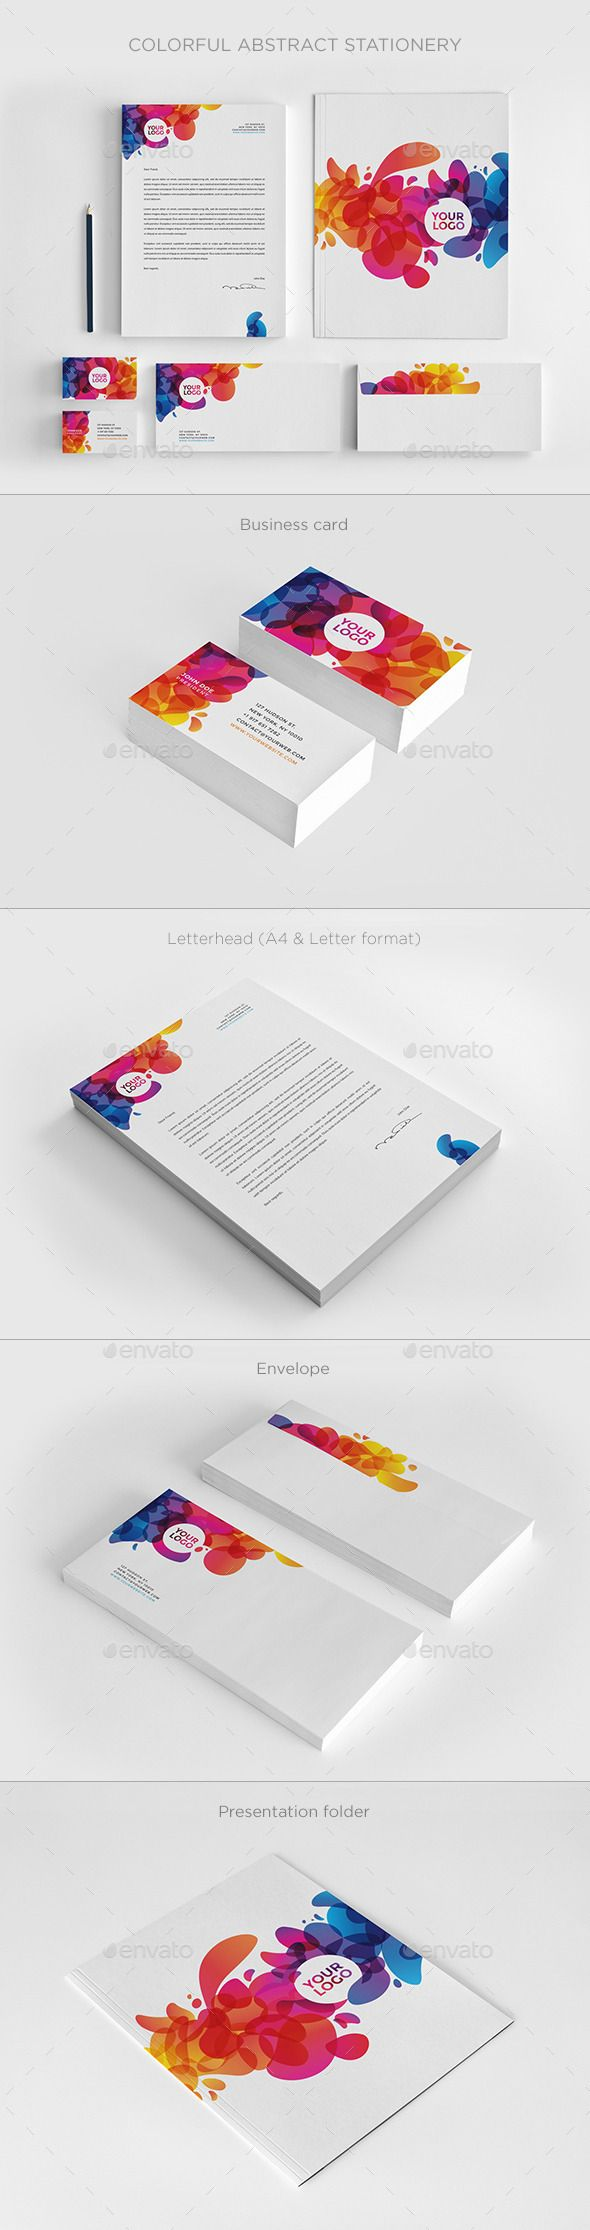 Colorful Abstract Stationery  Stationery Printing Print